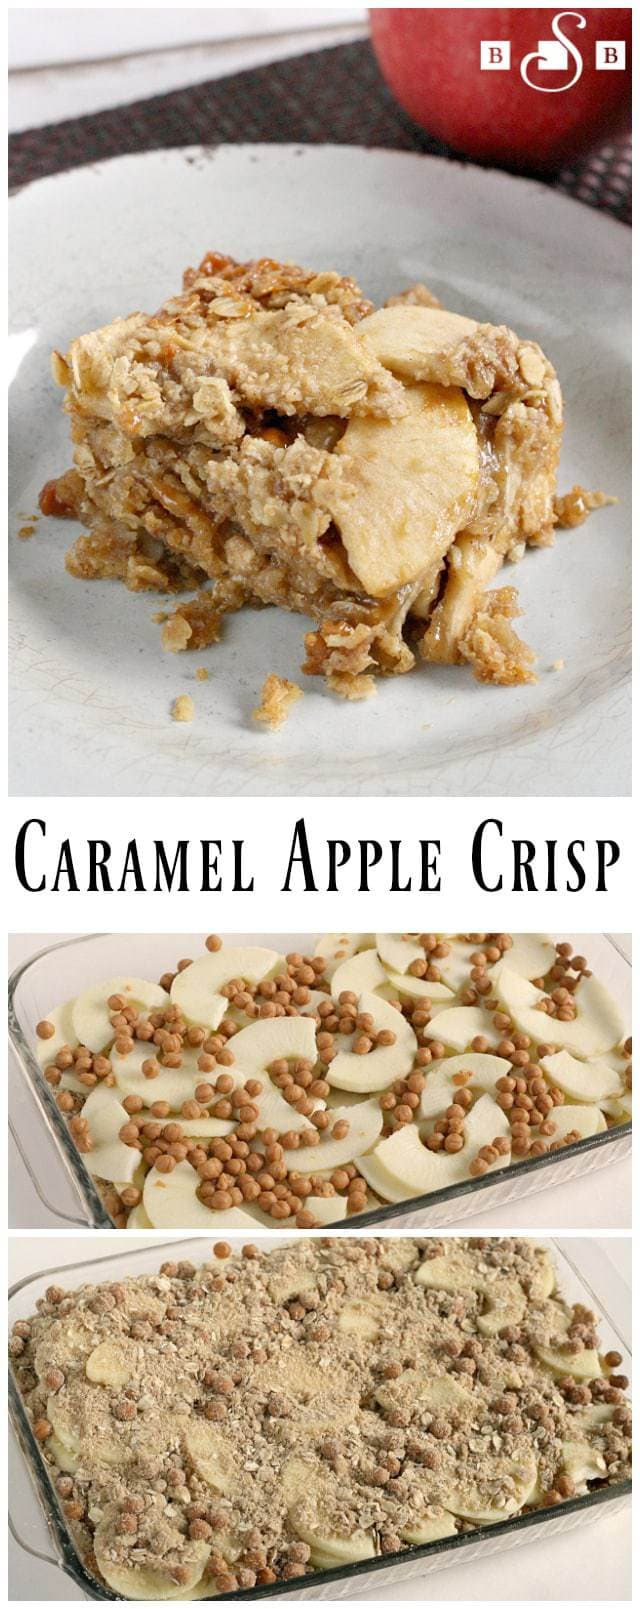 Who else is so excited for fall? Fall is the season for apples and I love the addition of caramel to this favorite traditional dessert. Everything is better with caramel added to it, and this dessert is no exception! Add a scoop of vanilla ice cream if you are feeling extra indulgent, but either way you will love this decadent dessert!